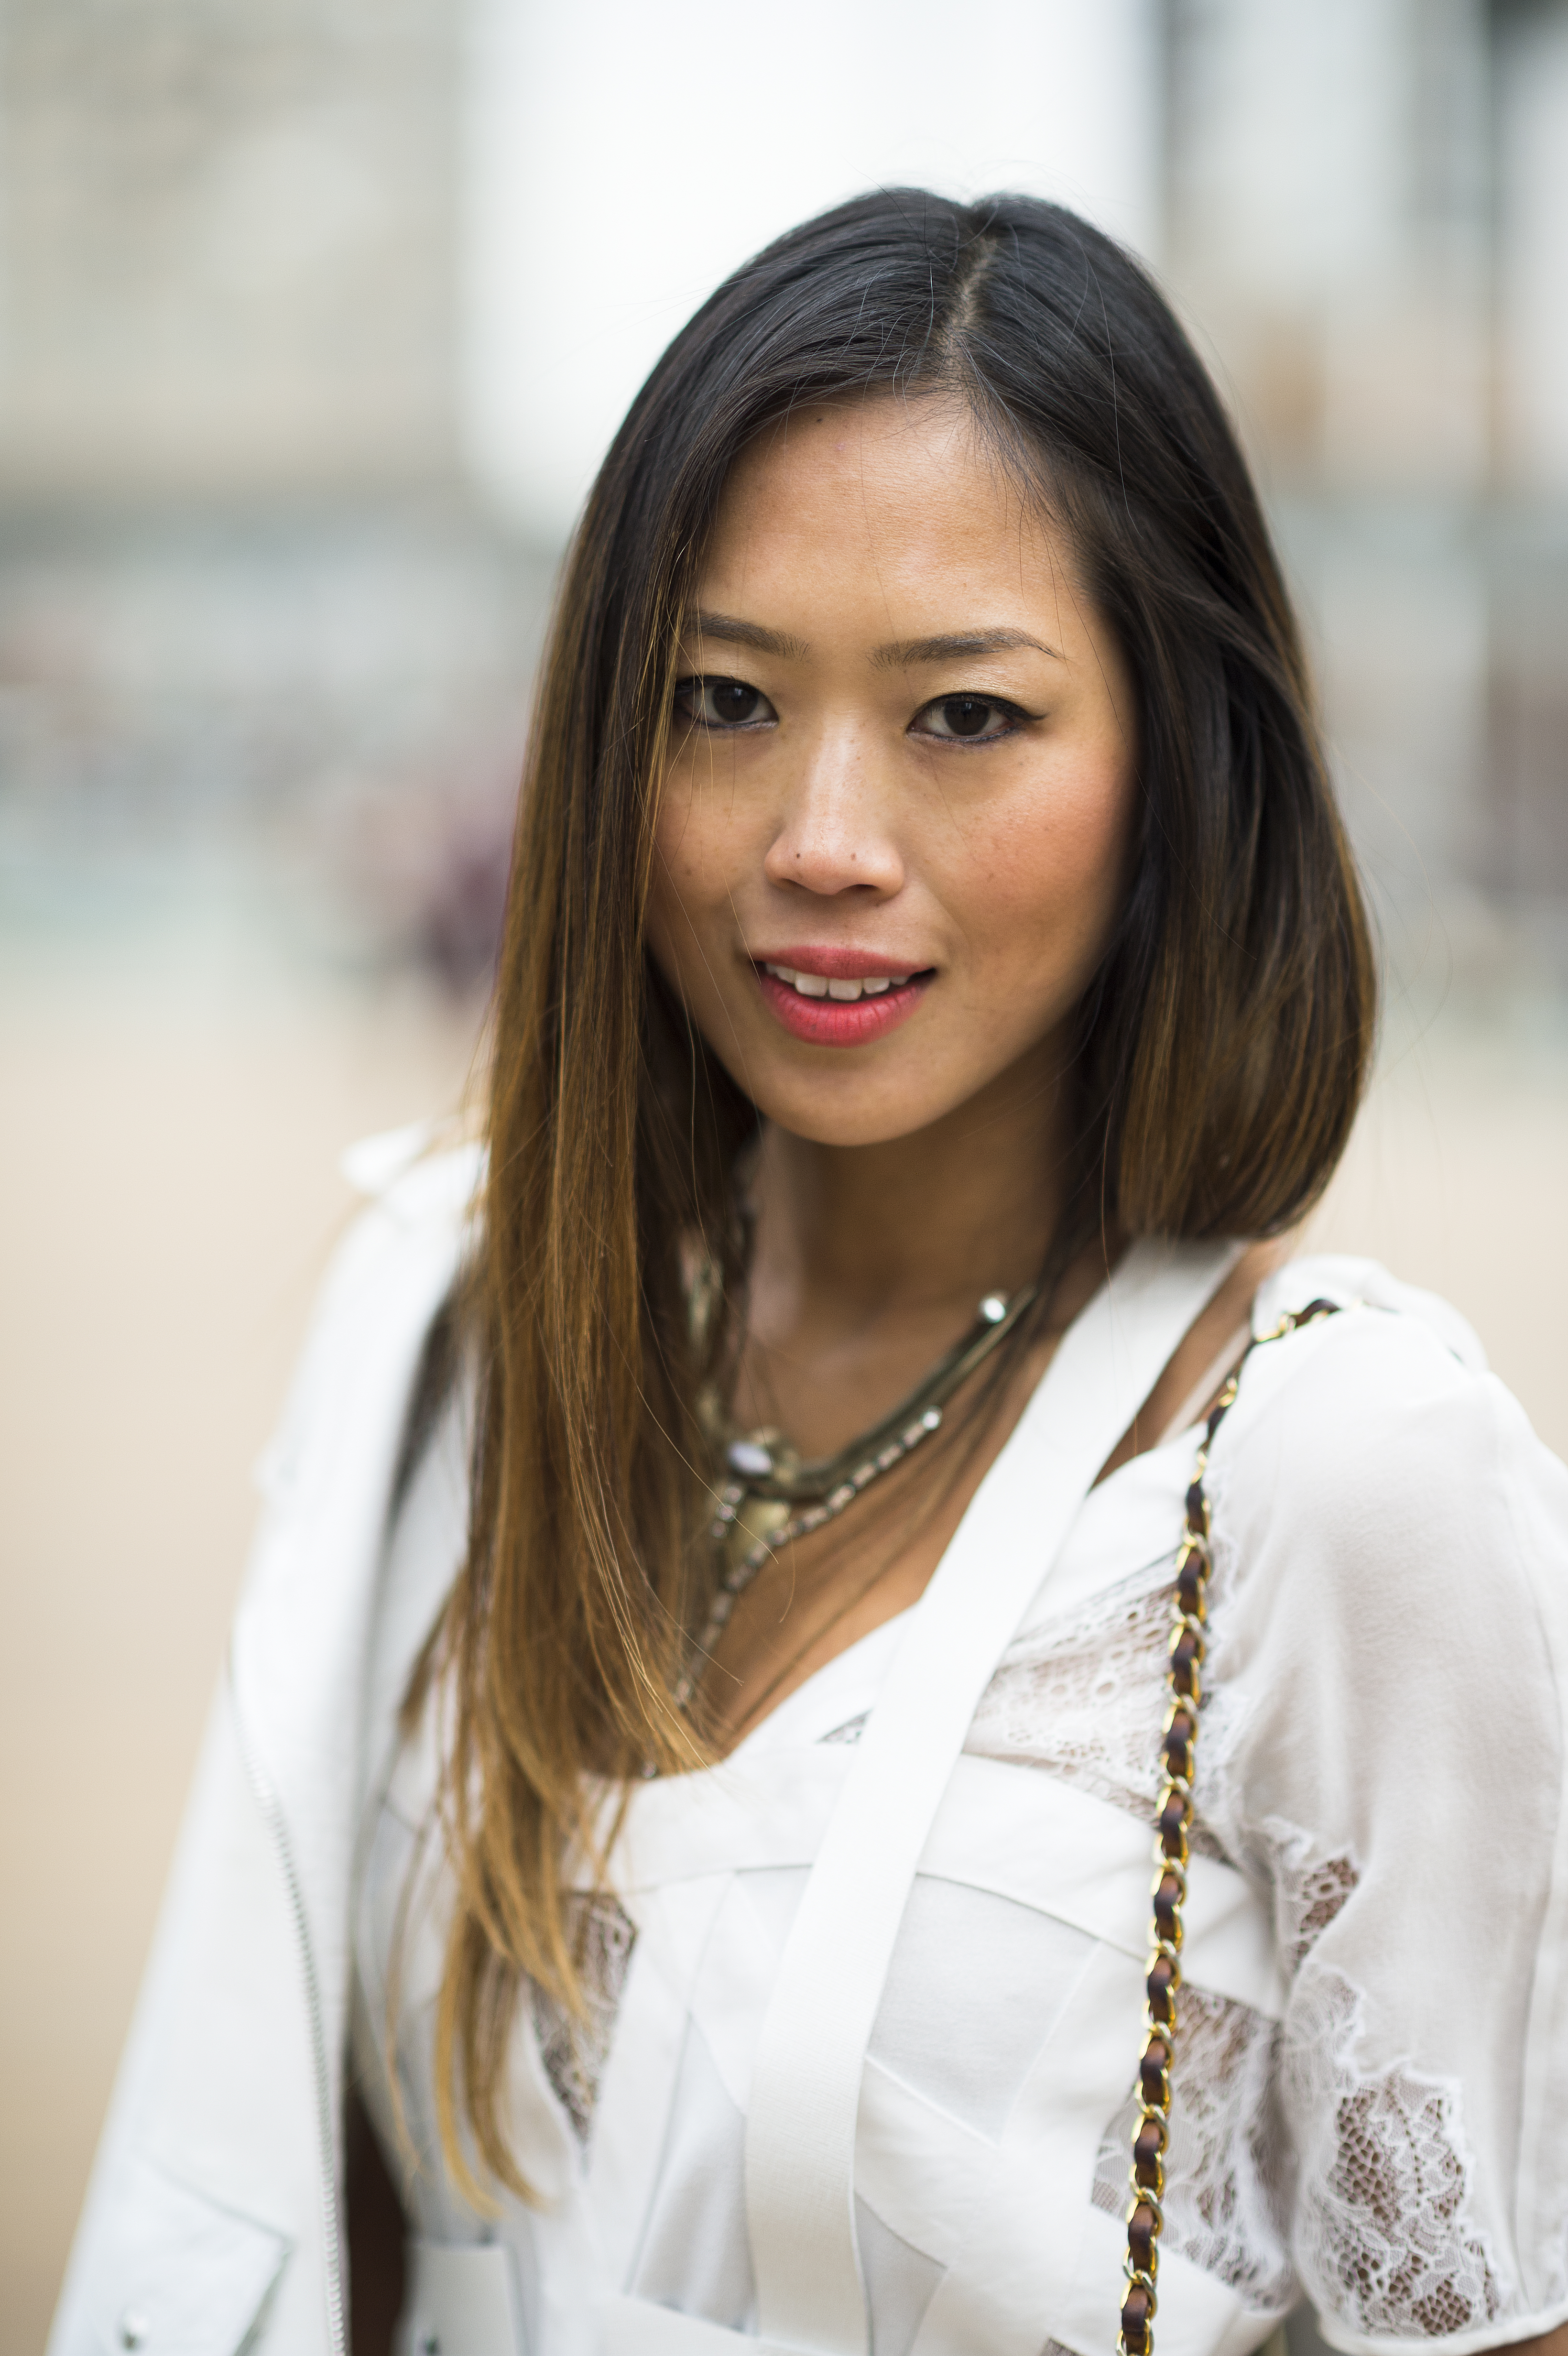 Aimee Song S Winter White Ensemble And Sleek Strands Got An Instant Beauty Street Style Soak